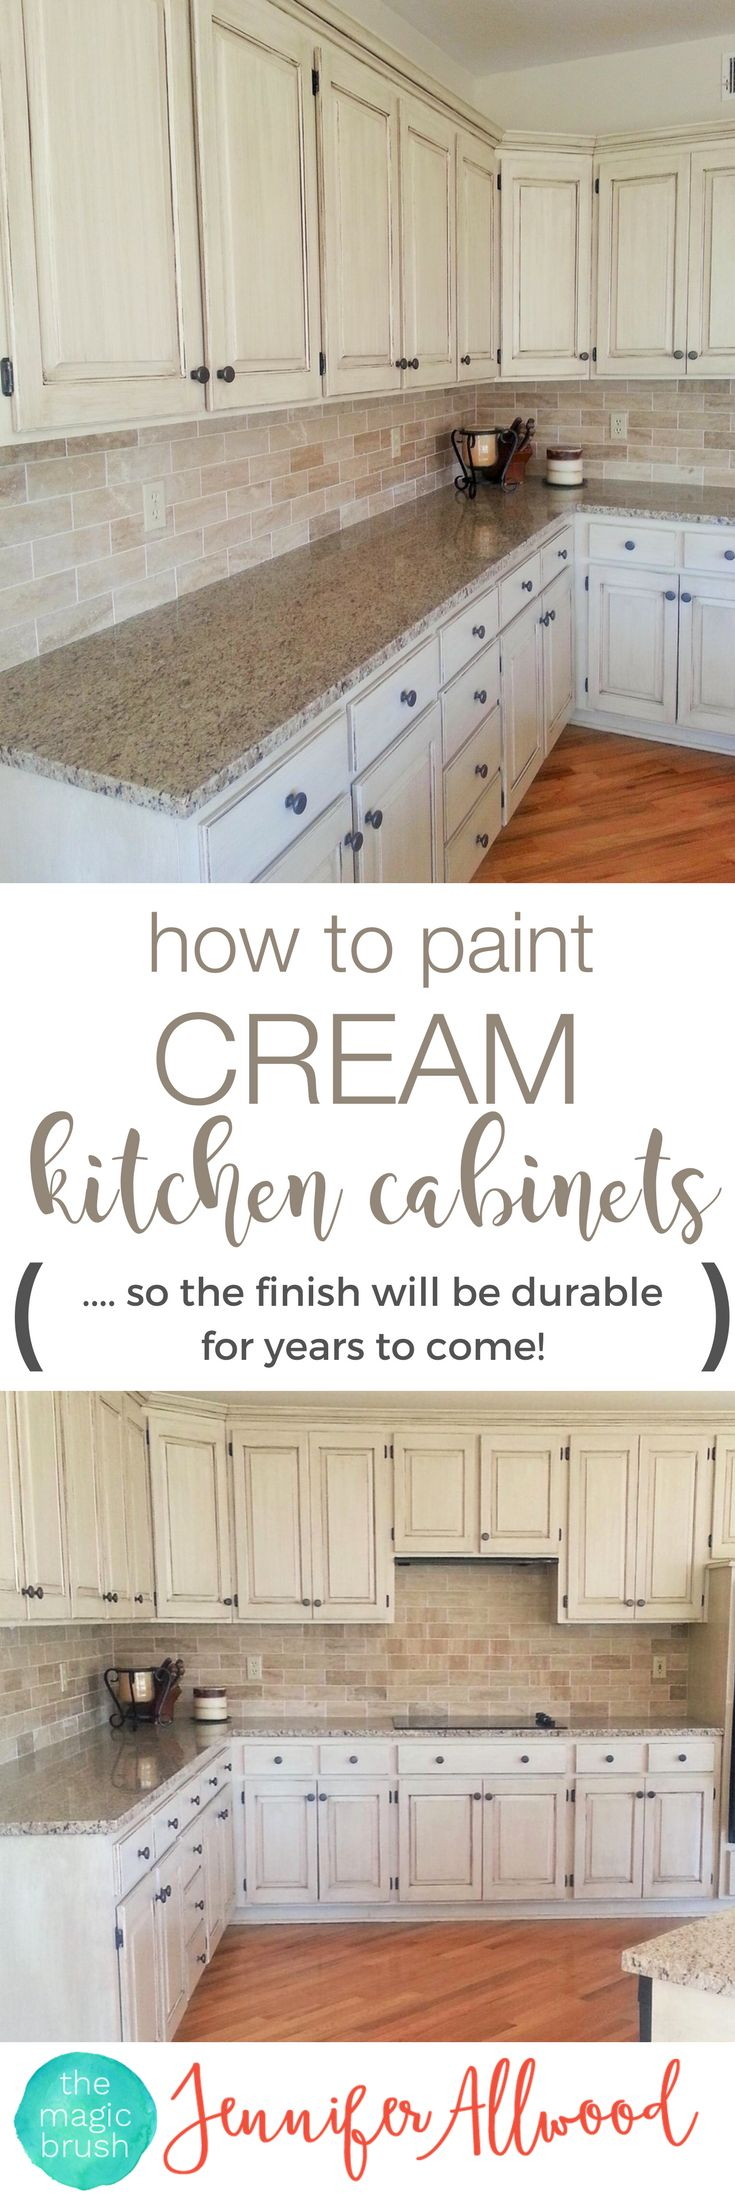 B82944 kitchen cabinets diy kitchens - How To Paint Cream Kitchen Cabinets So The Finish Will Be Durable Cabinet Painting Tips